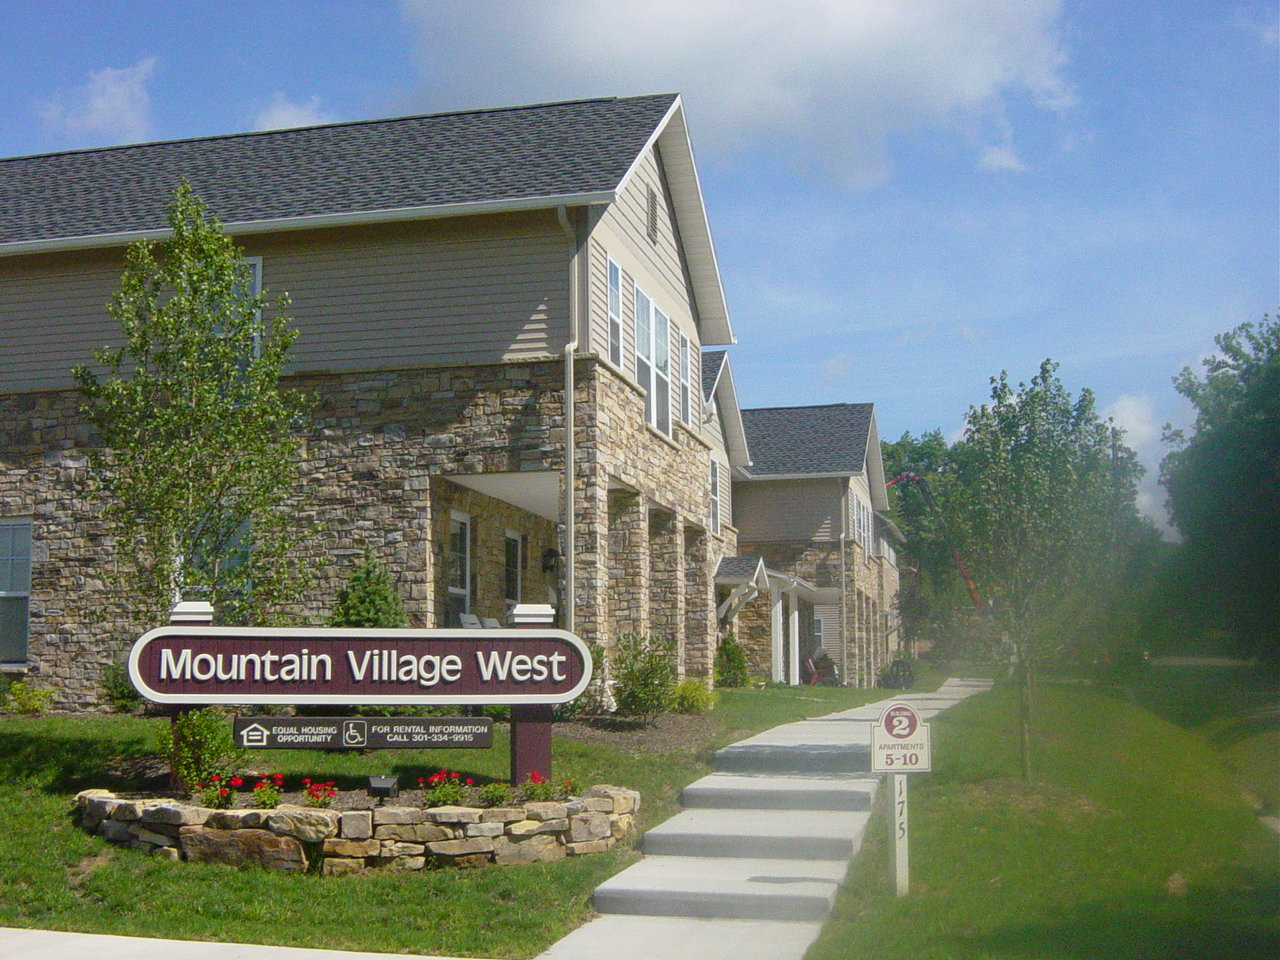 Mountain Village West 8 22 05 010